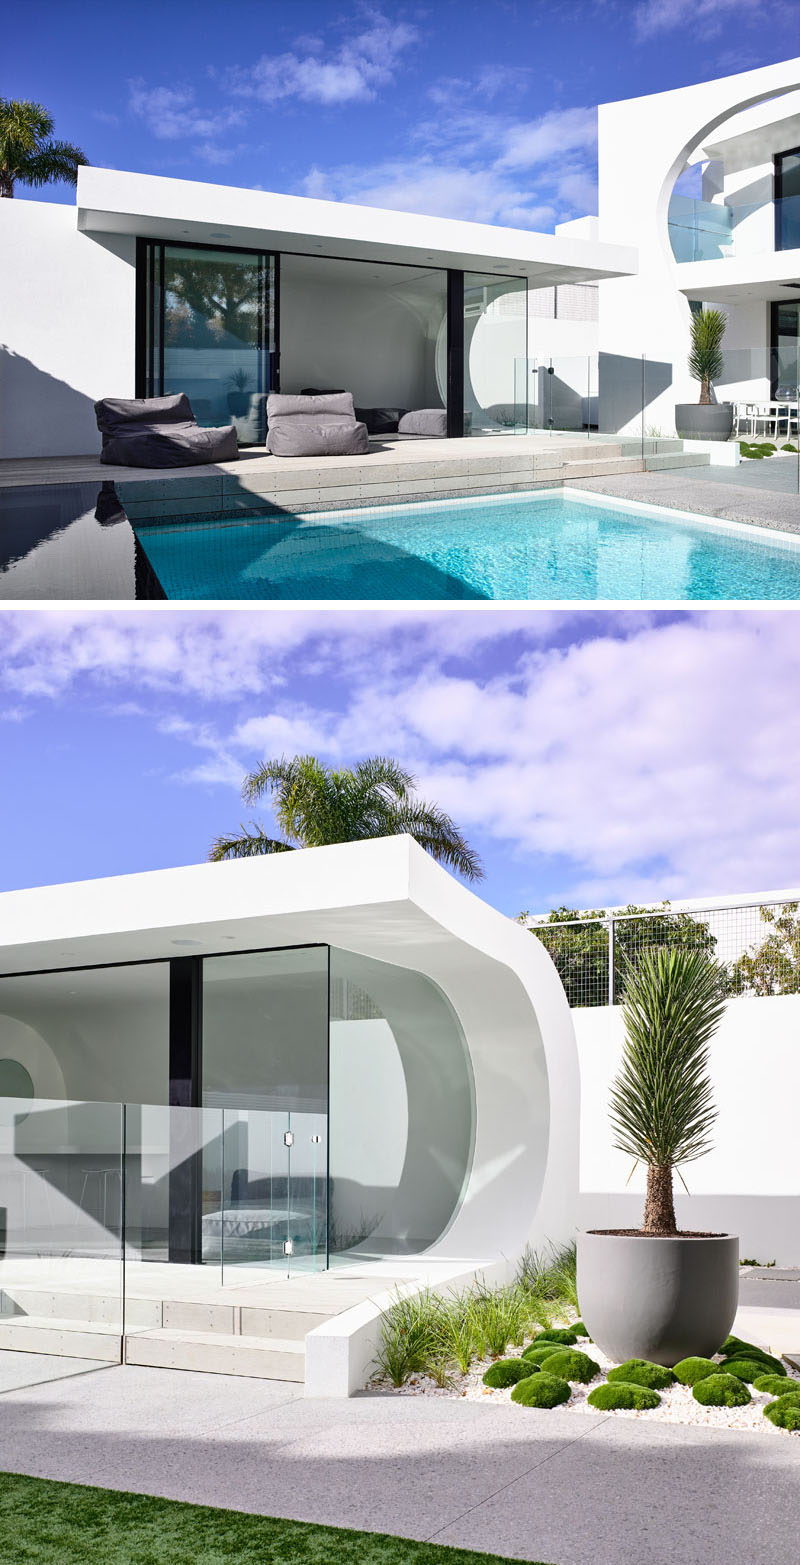 This modern backyard has an infinity edge spa and pool, and a wave style pool house. Click through to see more photos of this modern house. #Pool #SwimmingPool #PoolHouse #Architecture #Cabana